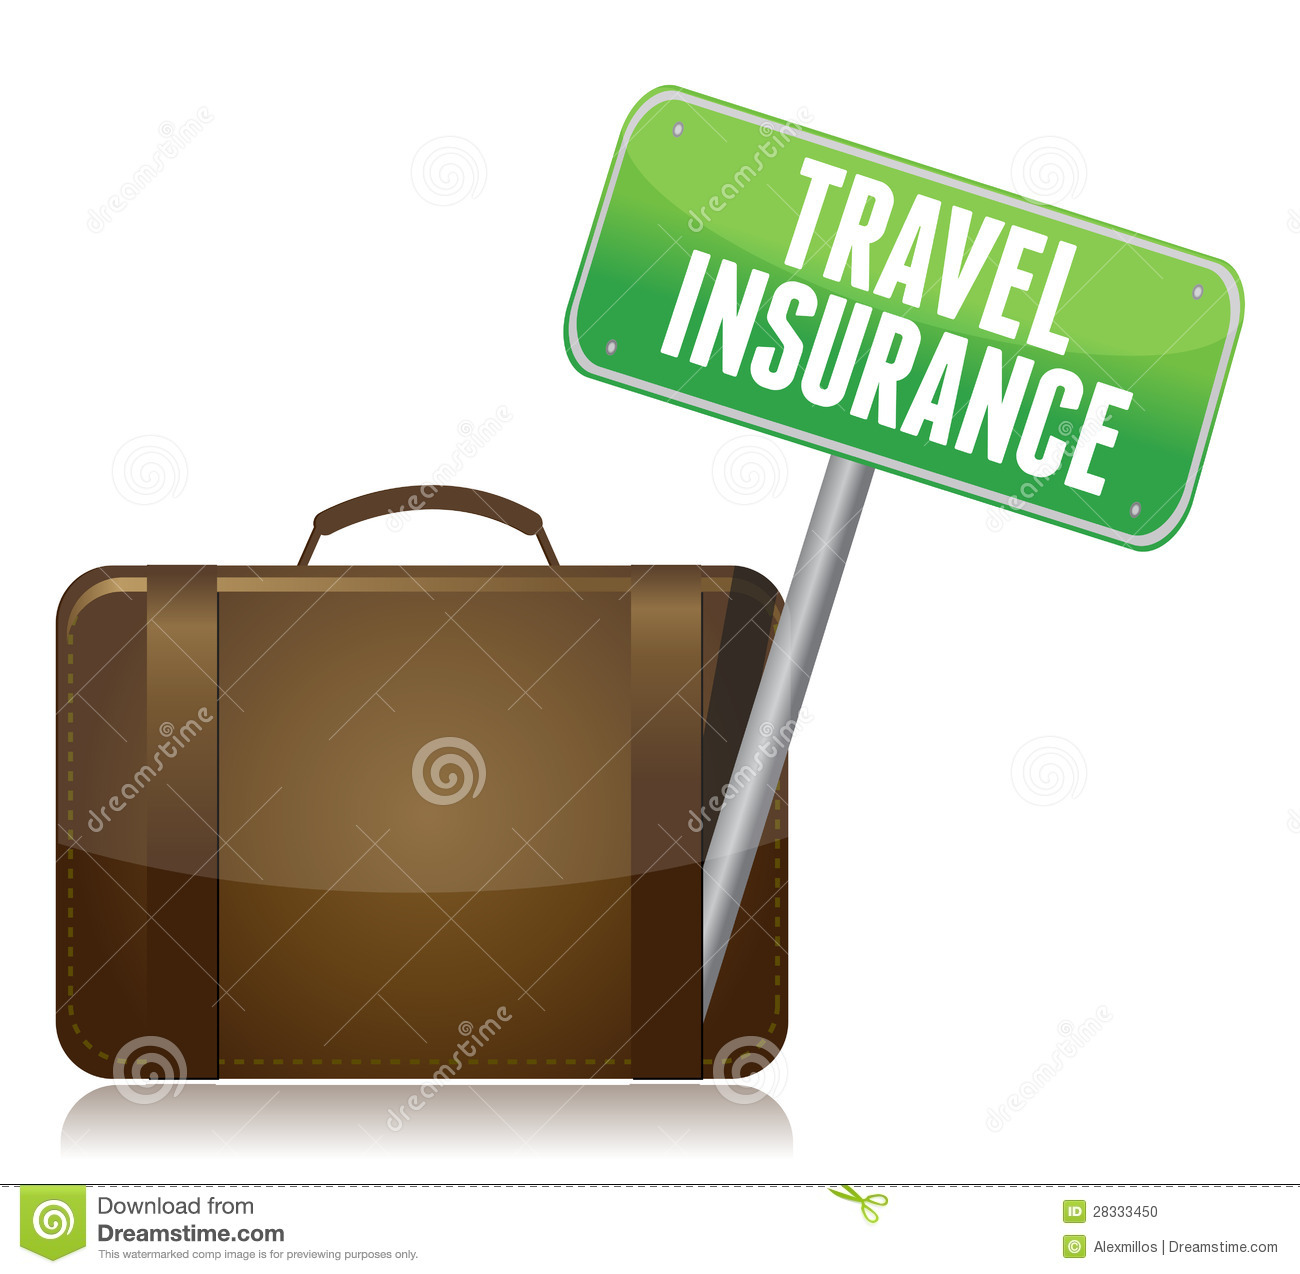 Travel Insurance concept isolated over a white background.